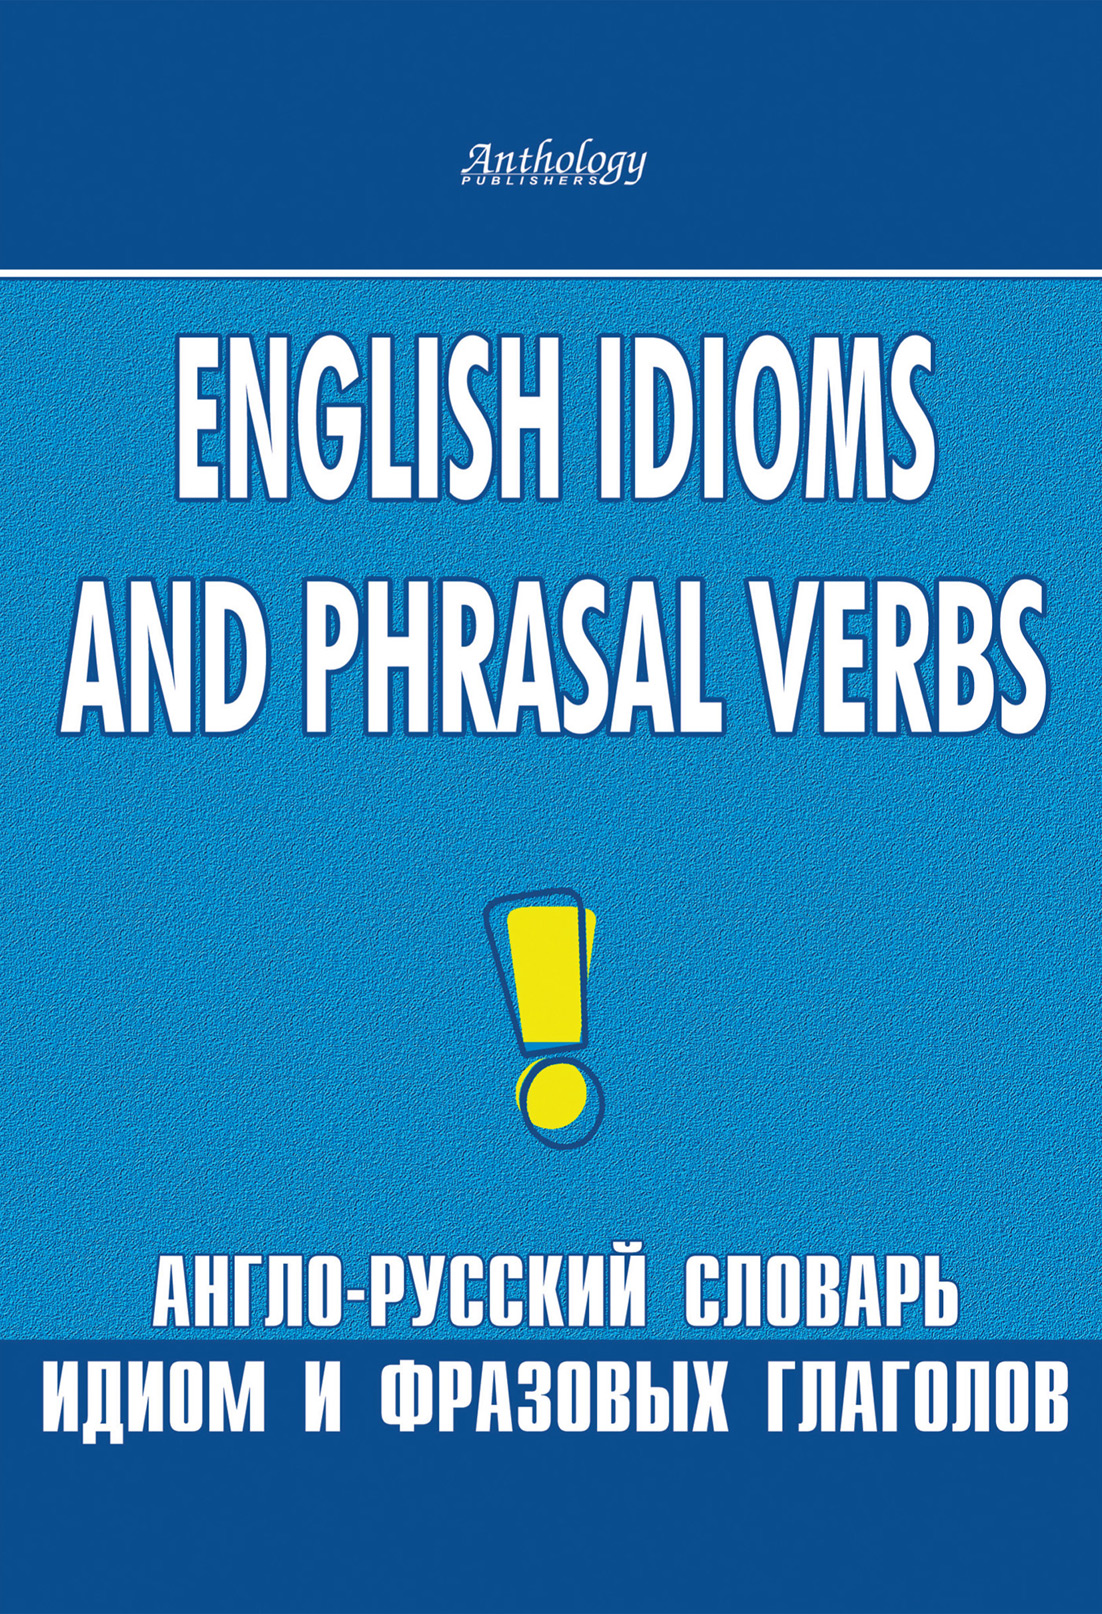 купить Л. Ф. Шитова English Idioms and Phrasal Verbs. Англо-русский словарь идиом и фразовых глаголов недорого